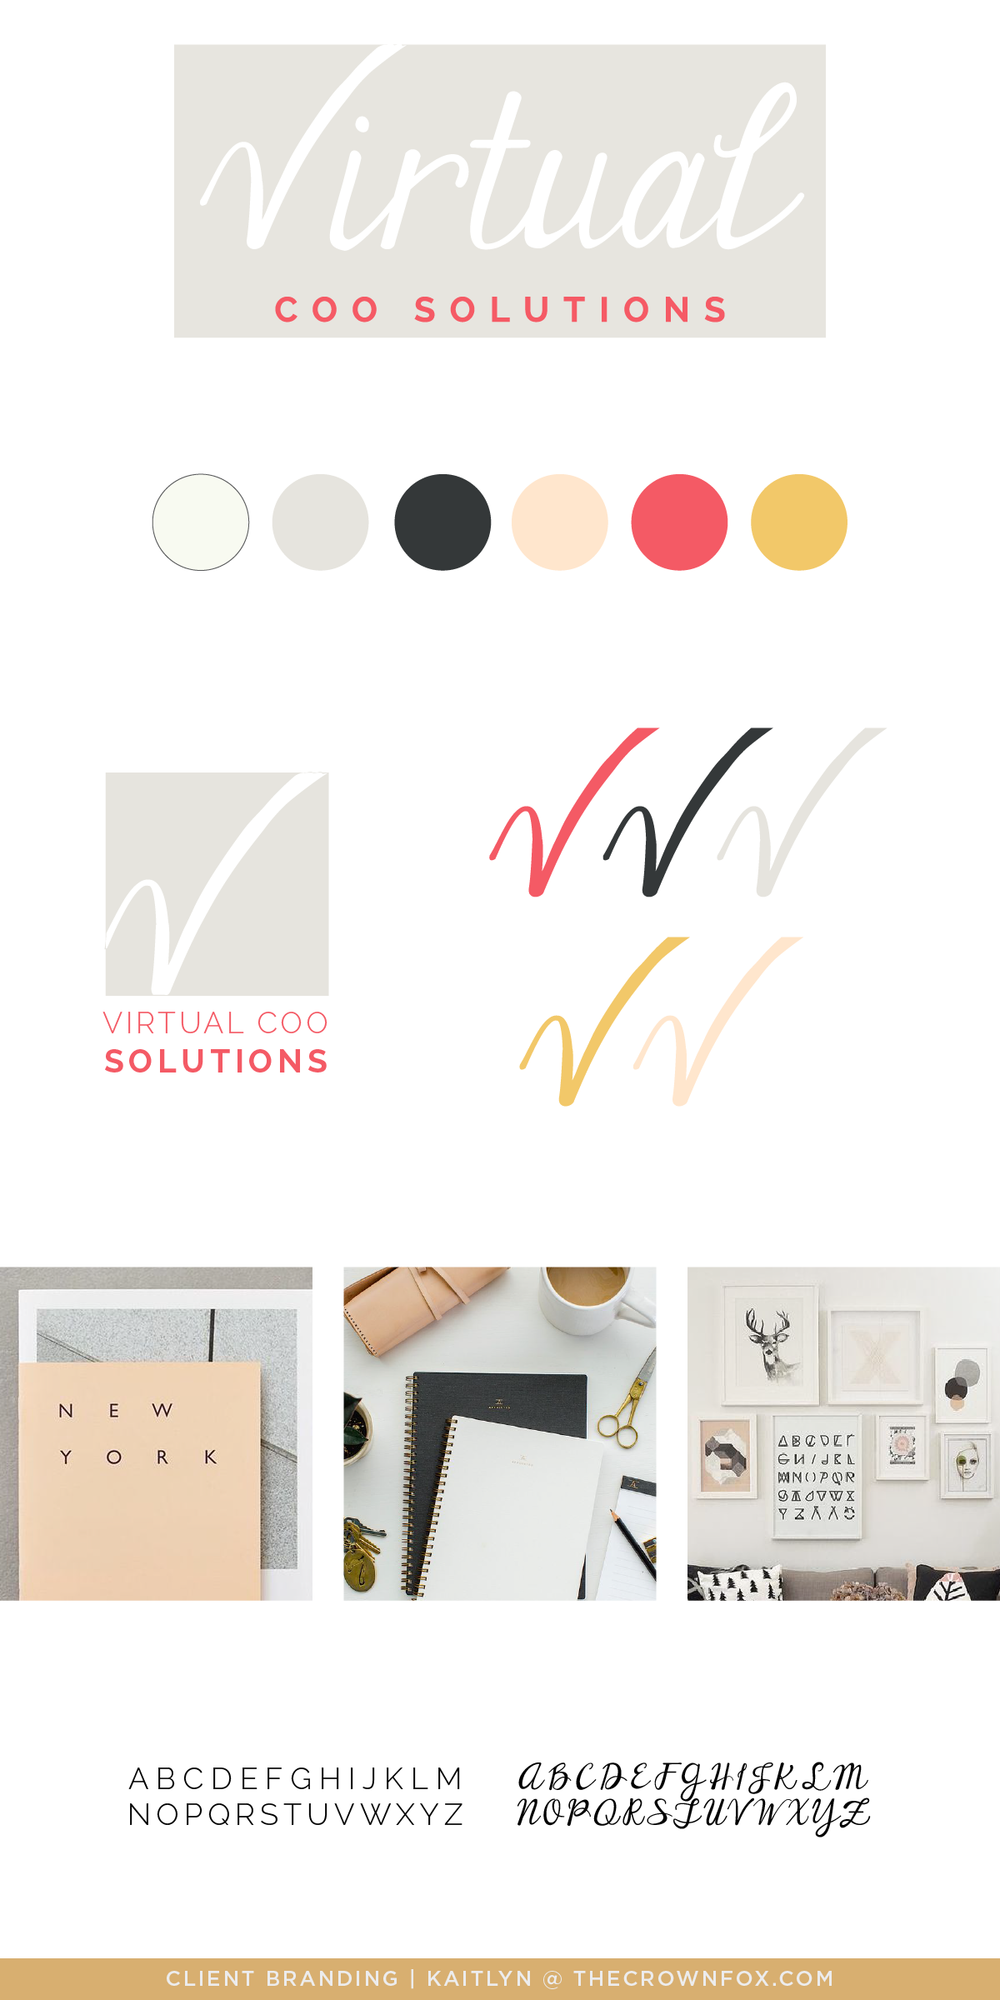 Client Branding Project - brand identity design, graphic design, brand board, logo design, color palette, typography, pattern design, mood board, inspiration board for online small businesses. Click through to learn more! TheCrownFox | www.TheCrownFox.com | Branding + Design